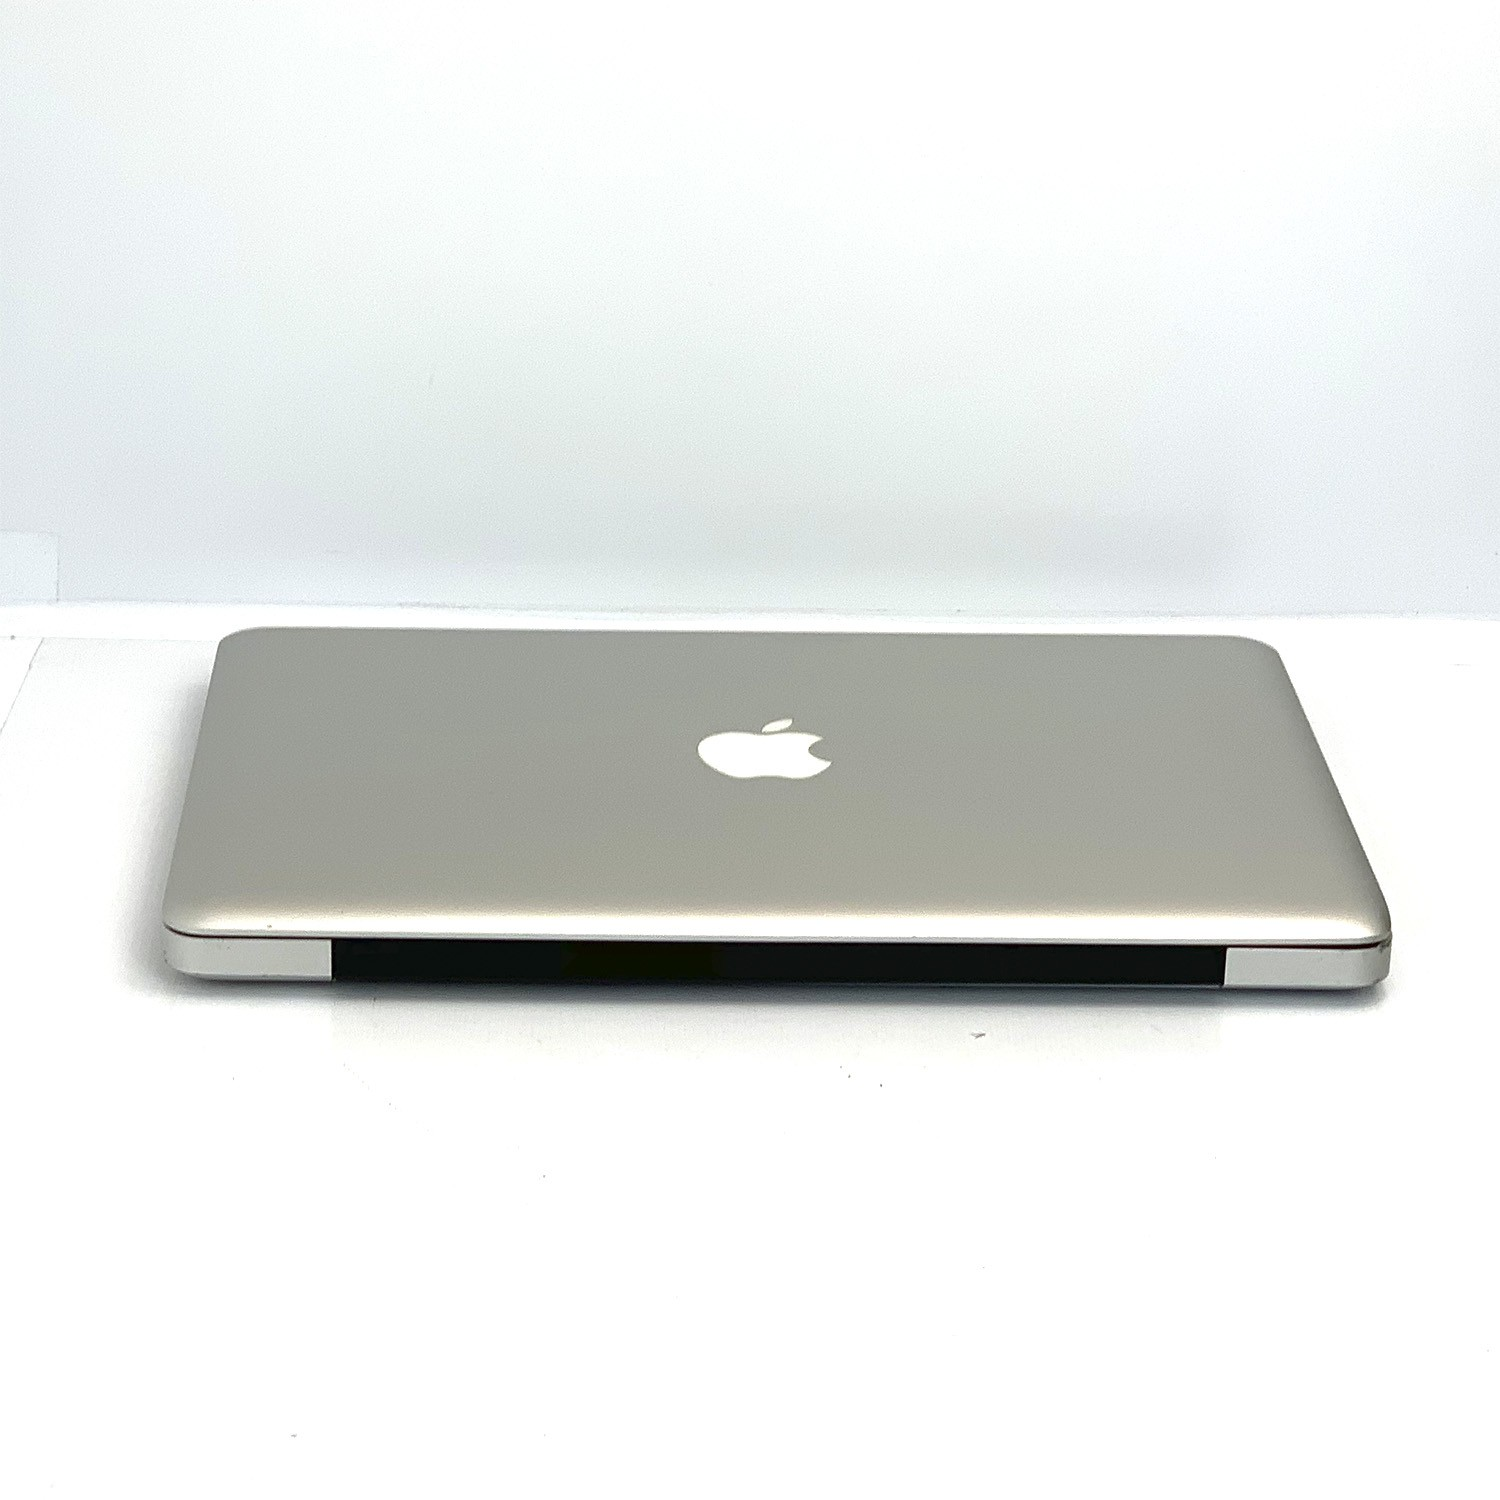 Macbook Pro 13 I7 2.8ghz 8gb 256gb Ssd Md314 Seminovo